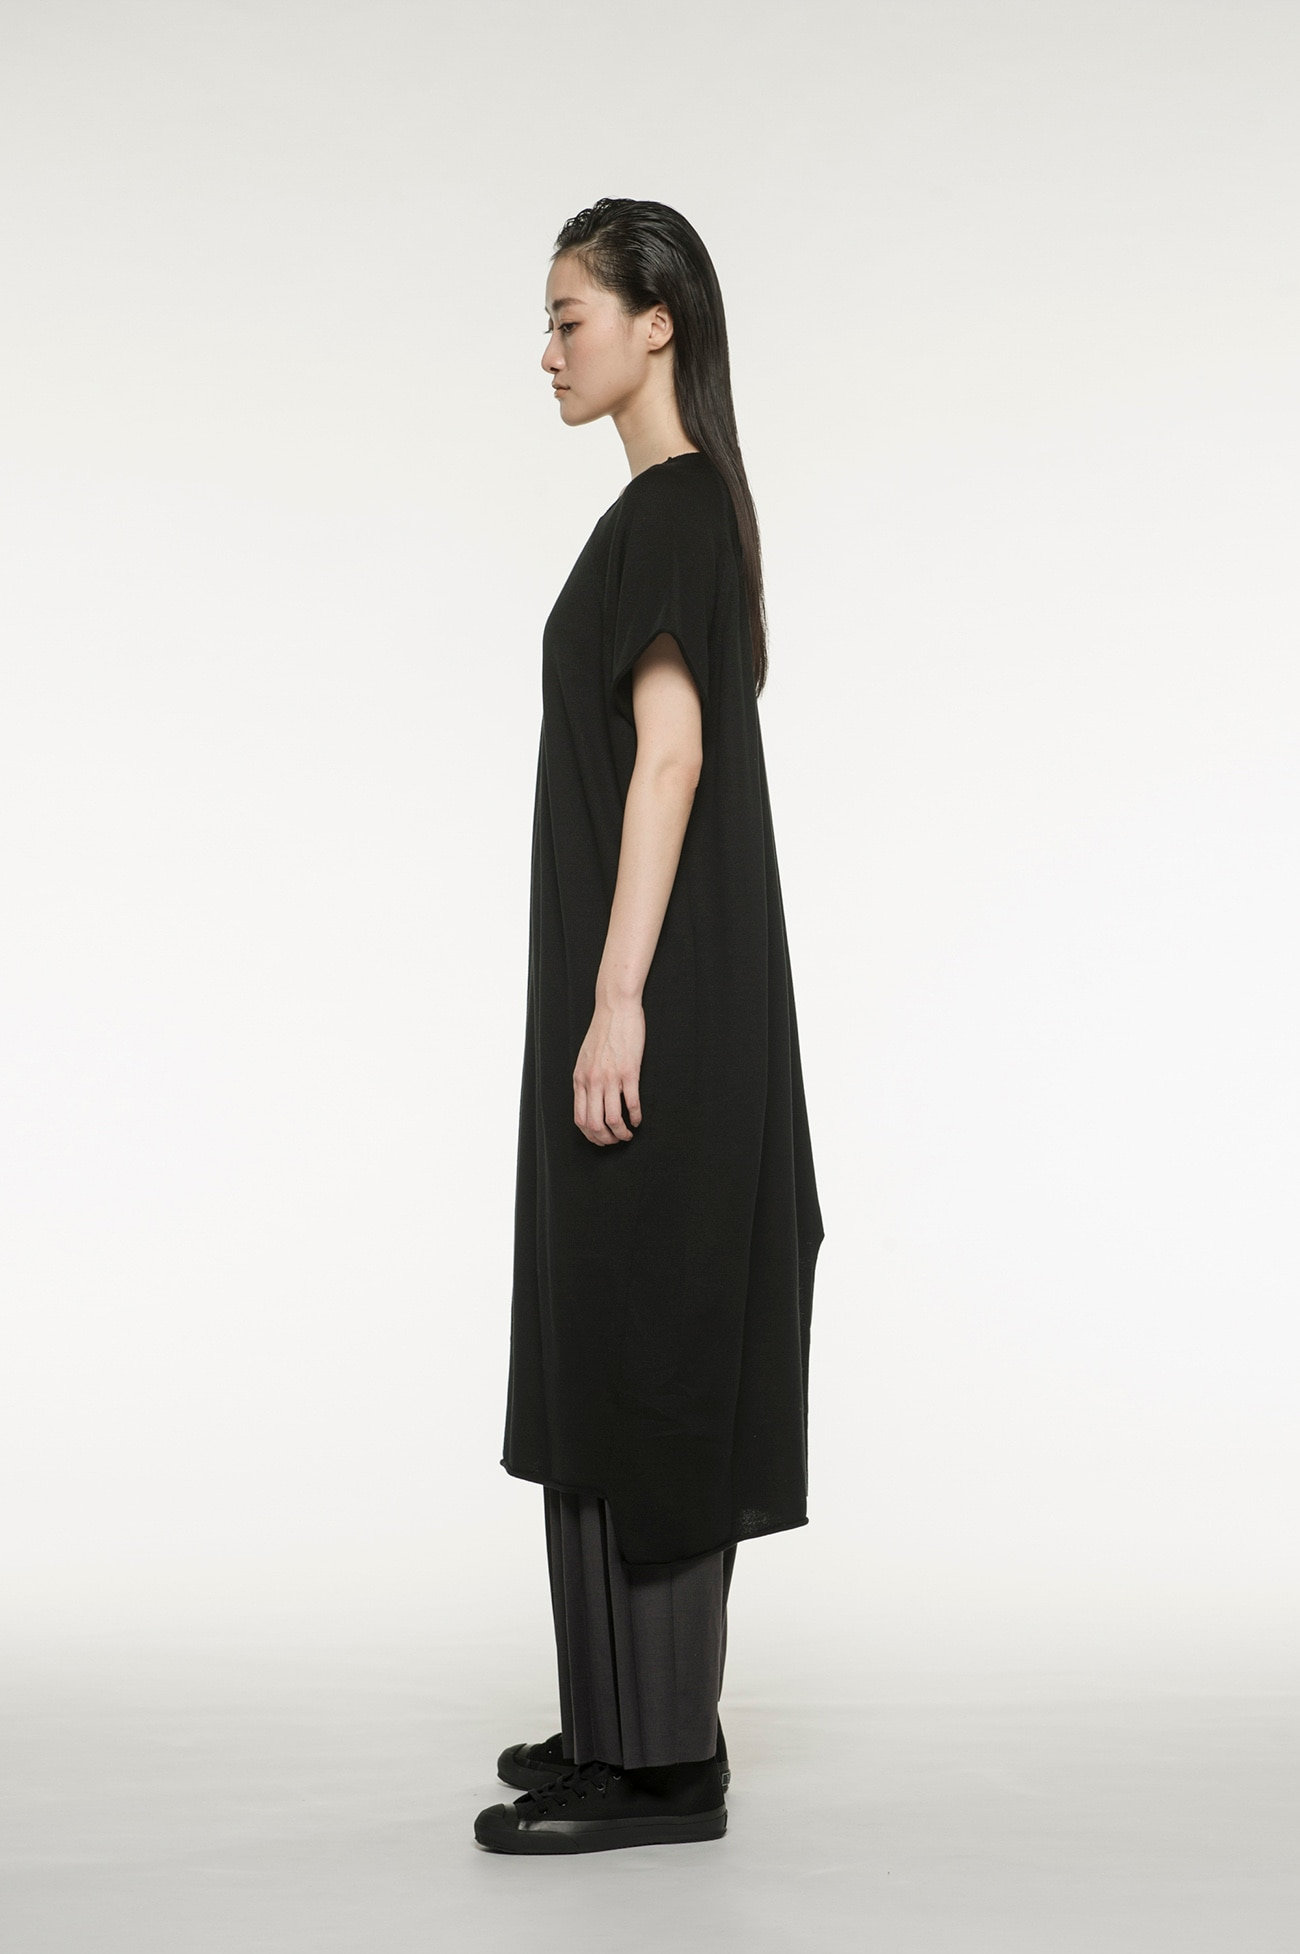 RISMATbyY's Acrylic Cotton Degree Amatenji Asymmetric Knit Dress